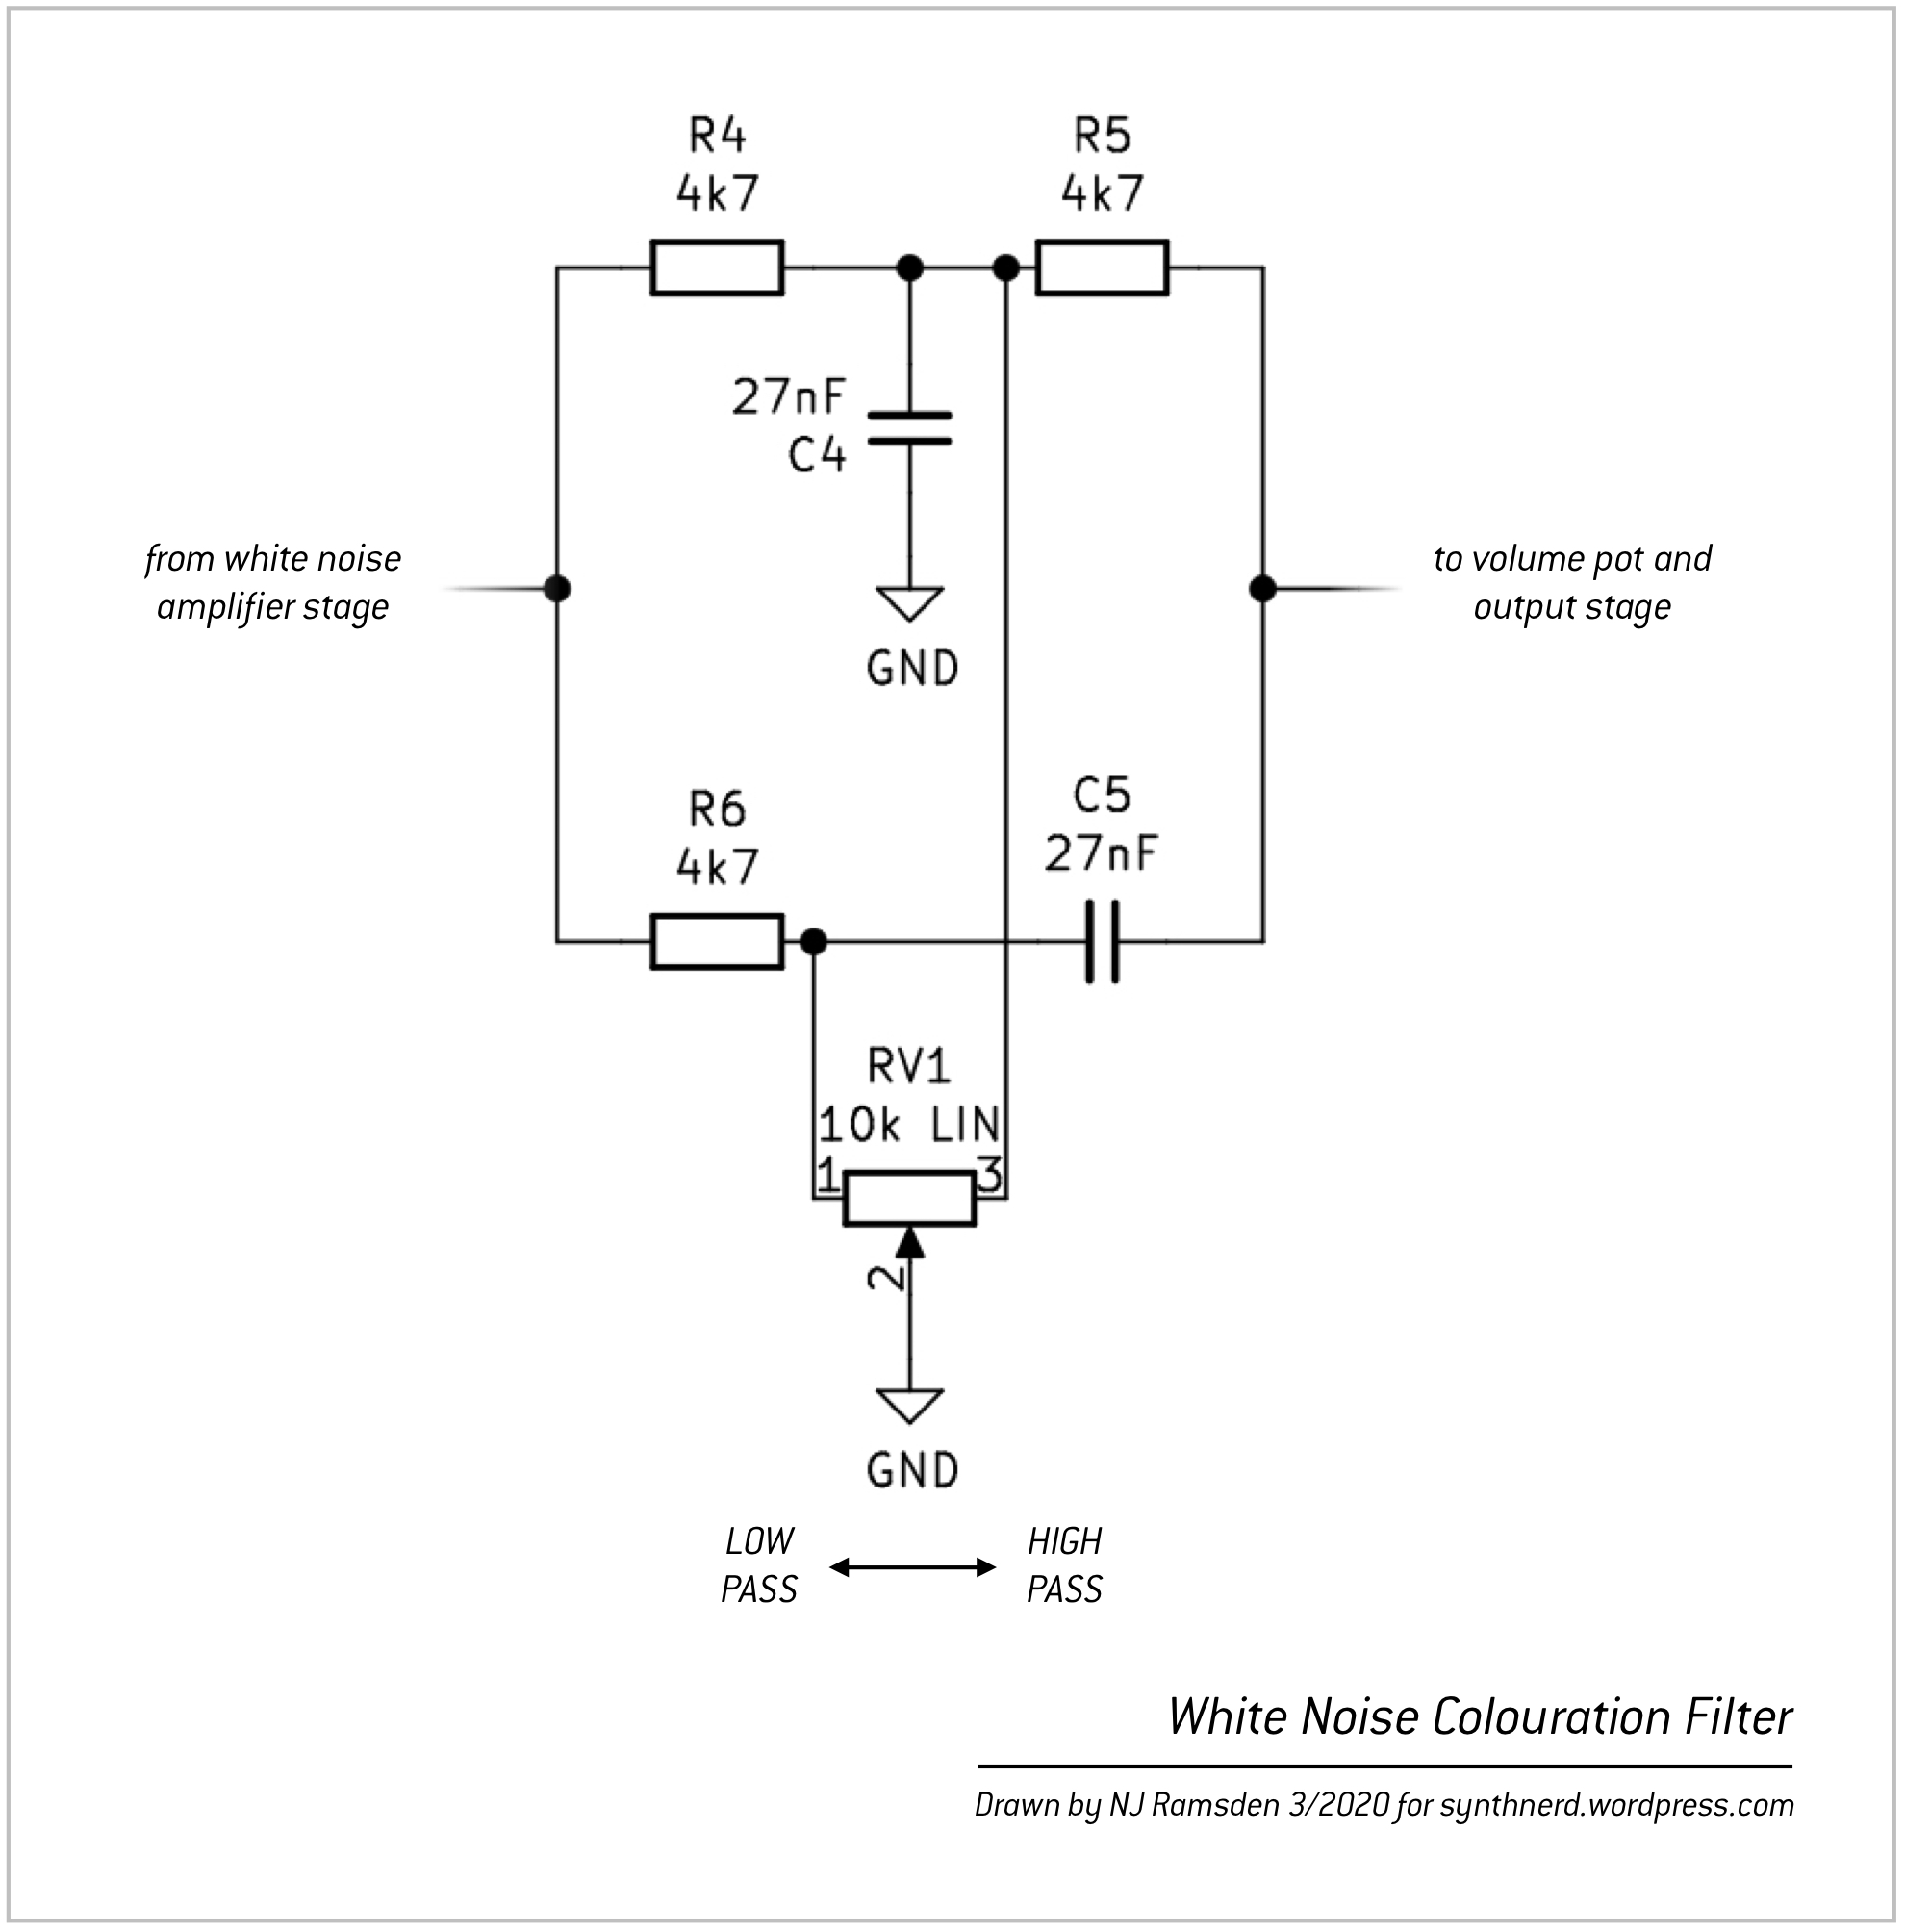 Schematic diagram of the white noise colouration filter